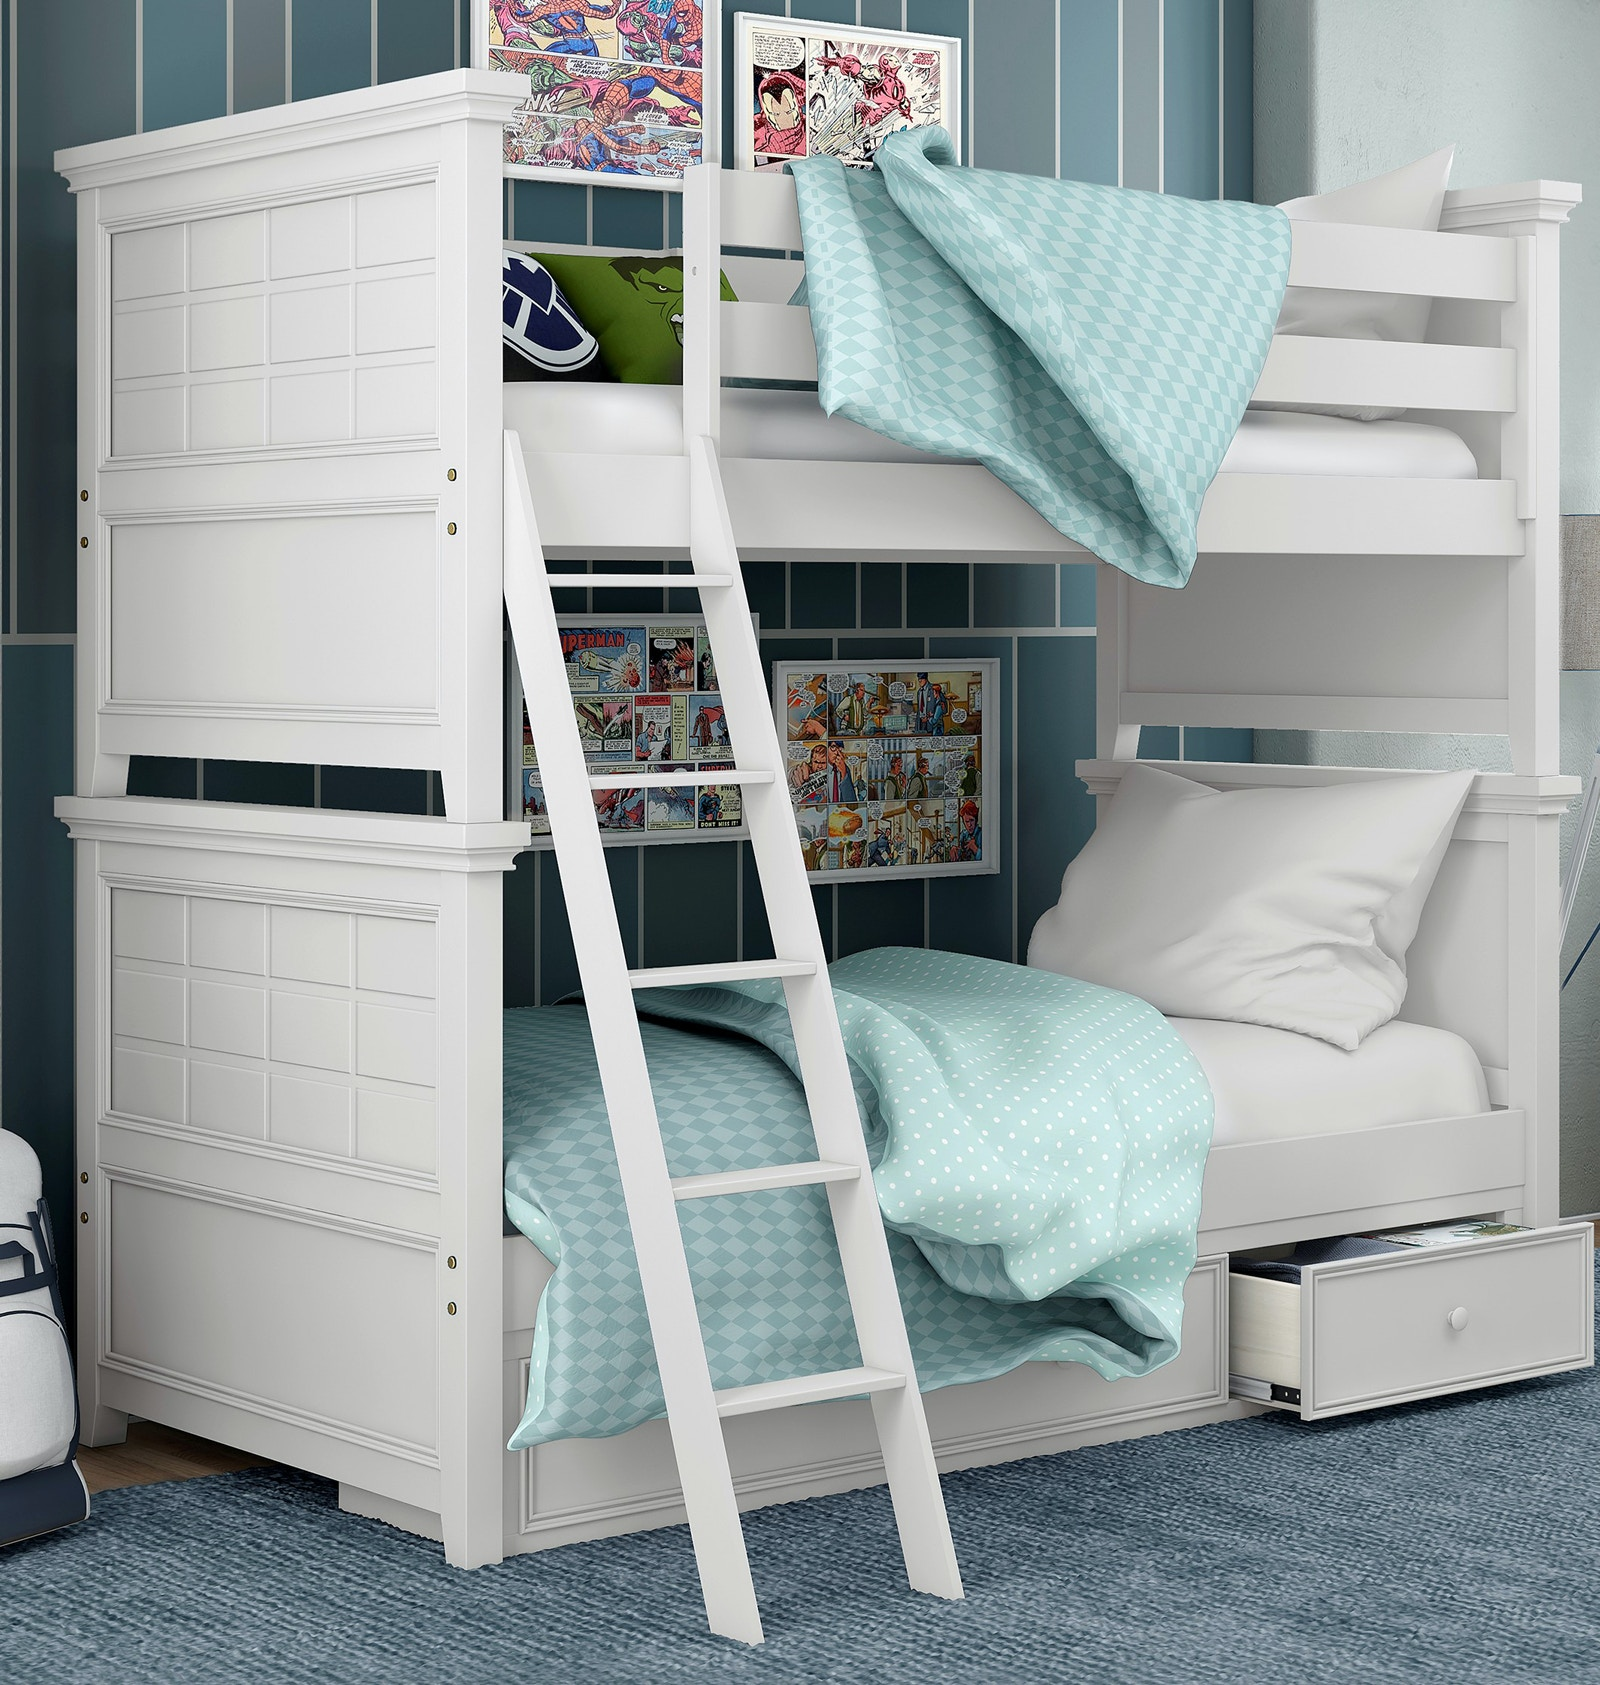 My Home Furnishings Youth Bailey White Bunk Bed - Full over Full ...